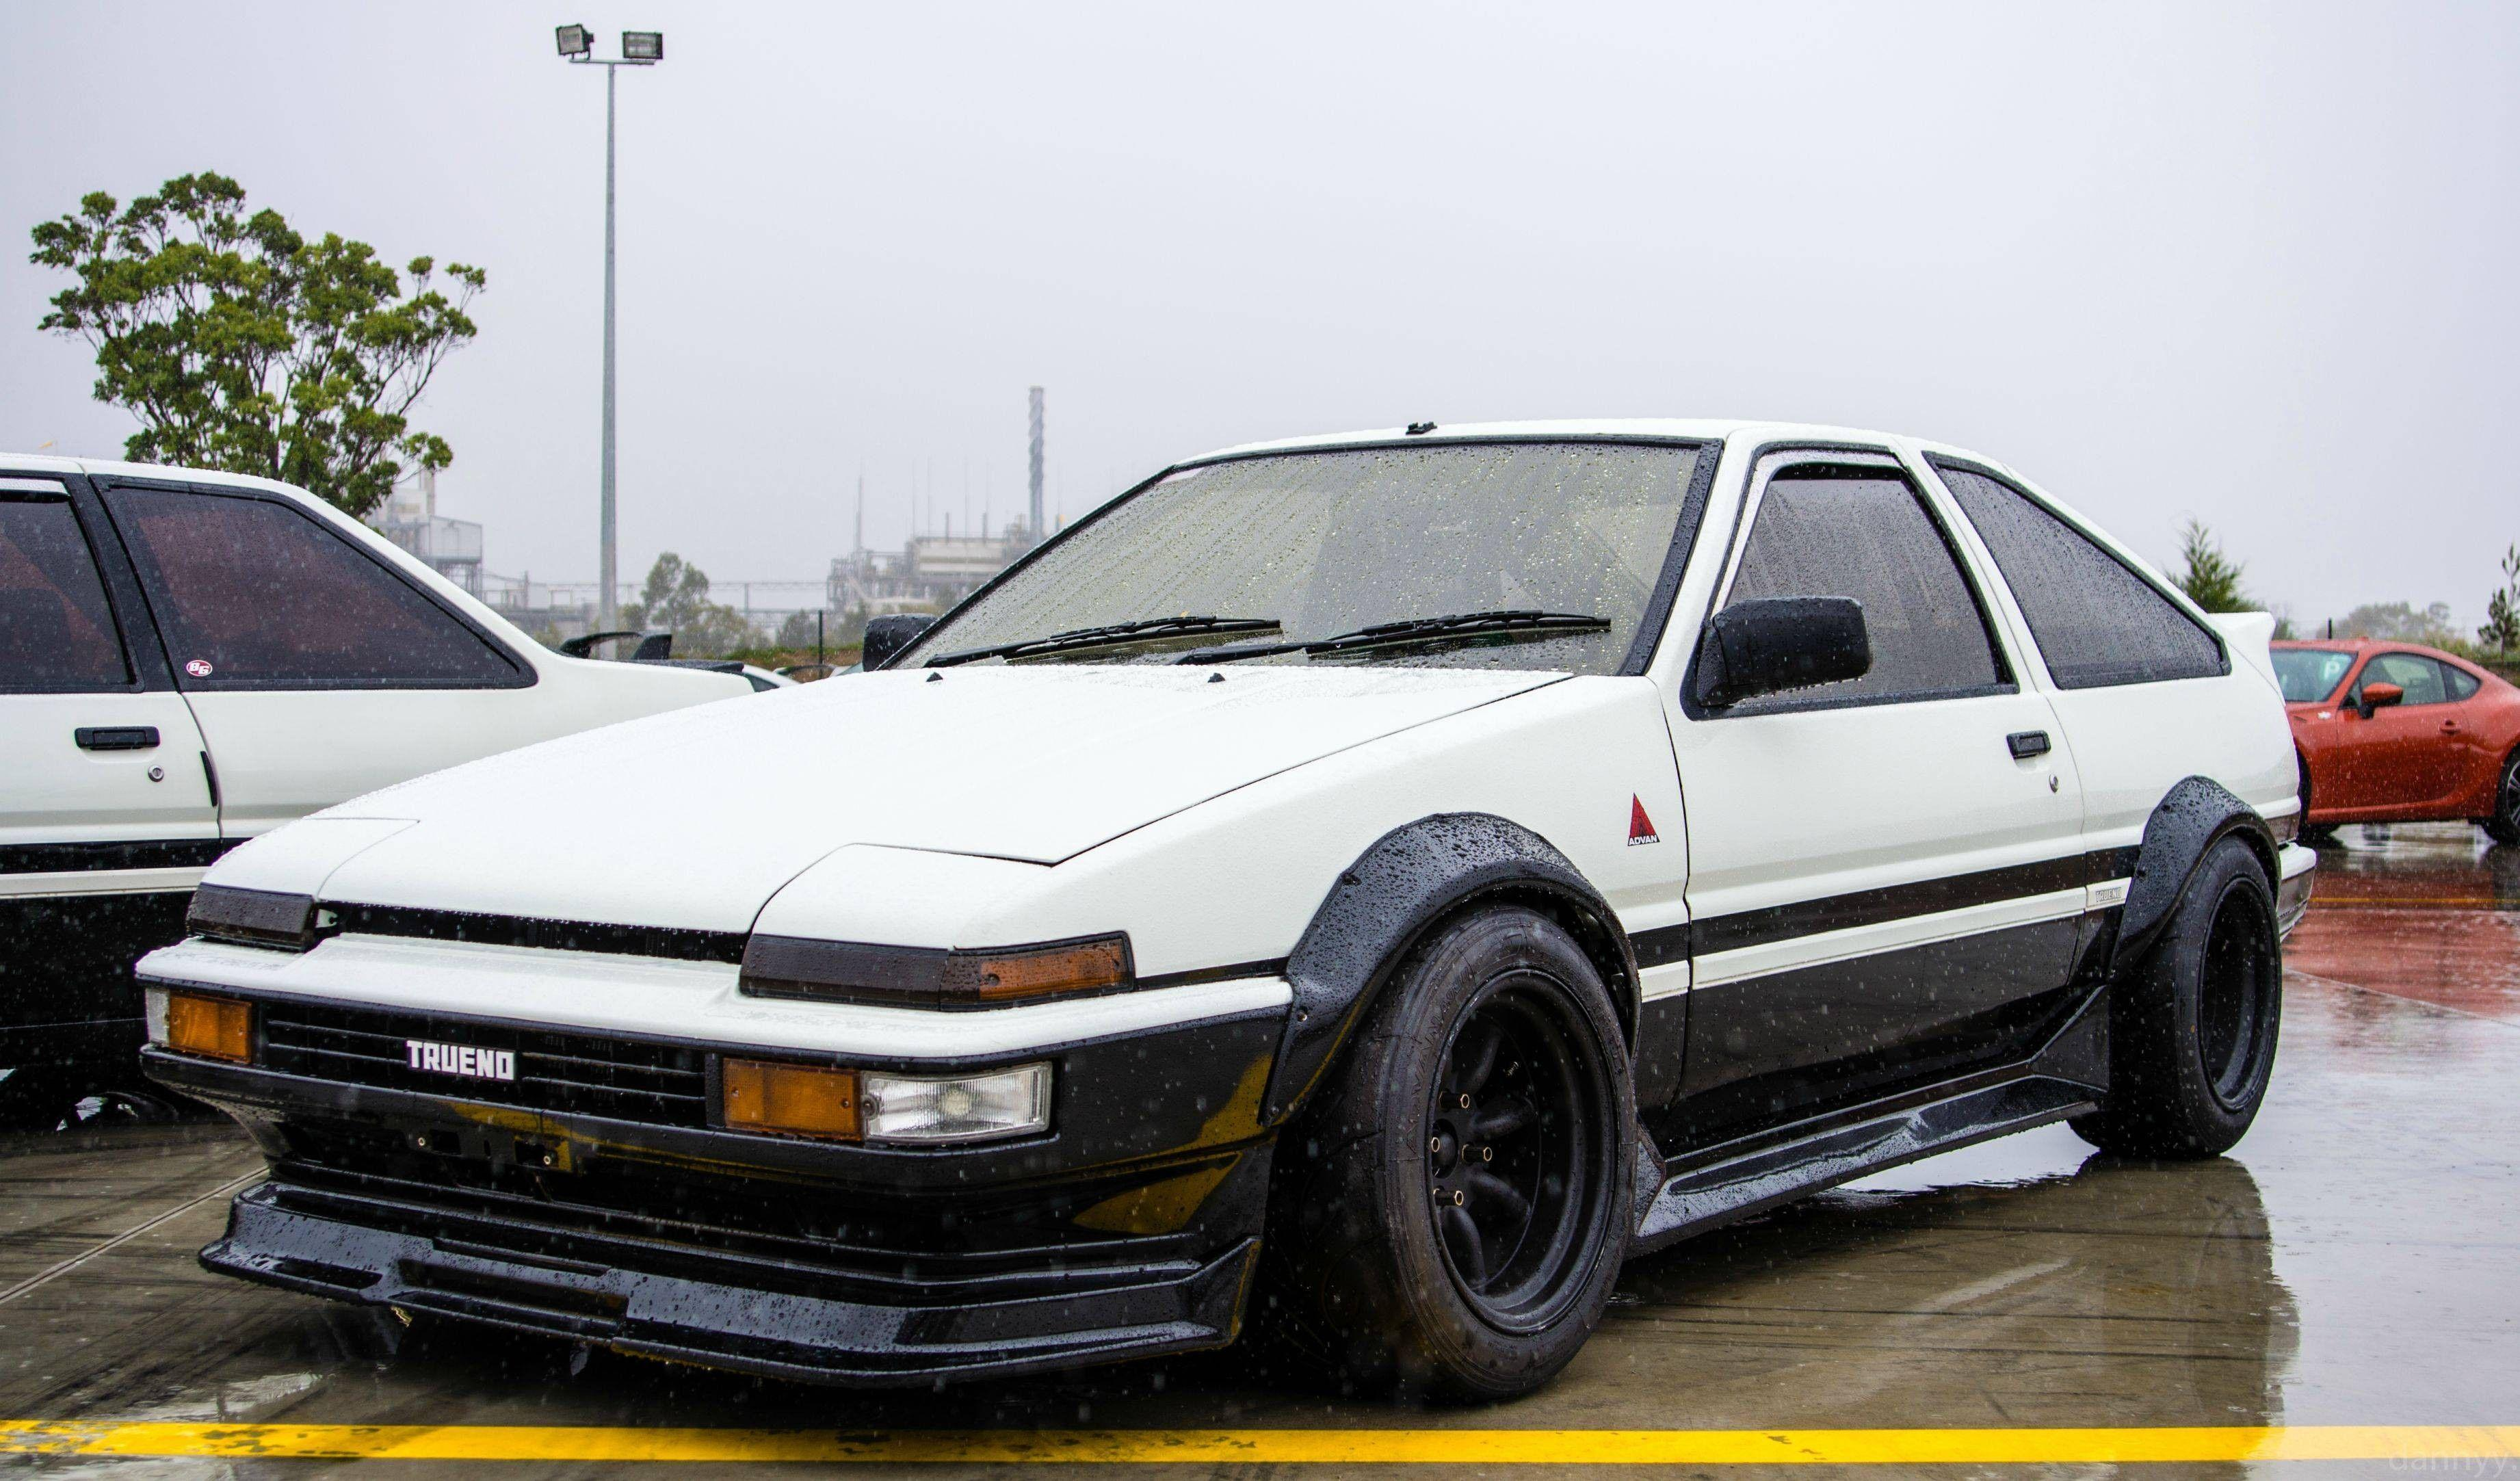 Toyota AE86 Wallpapers   Top Toyota AE86 Backgrounds 3684x2165